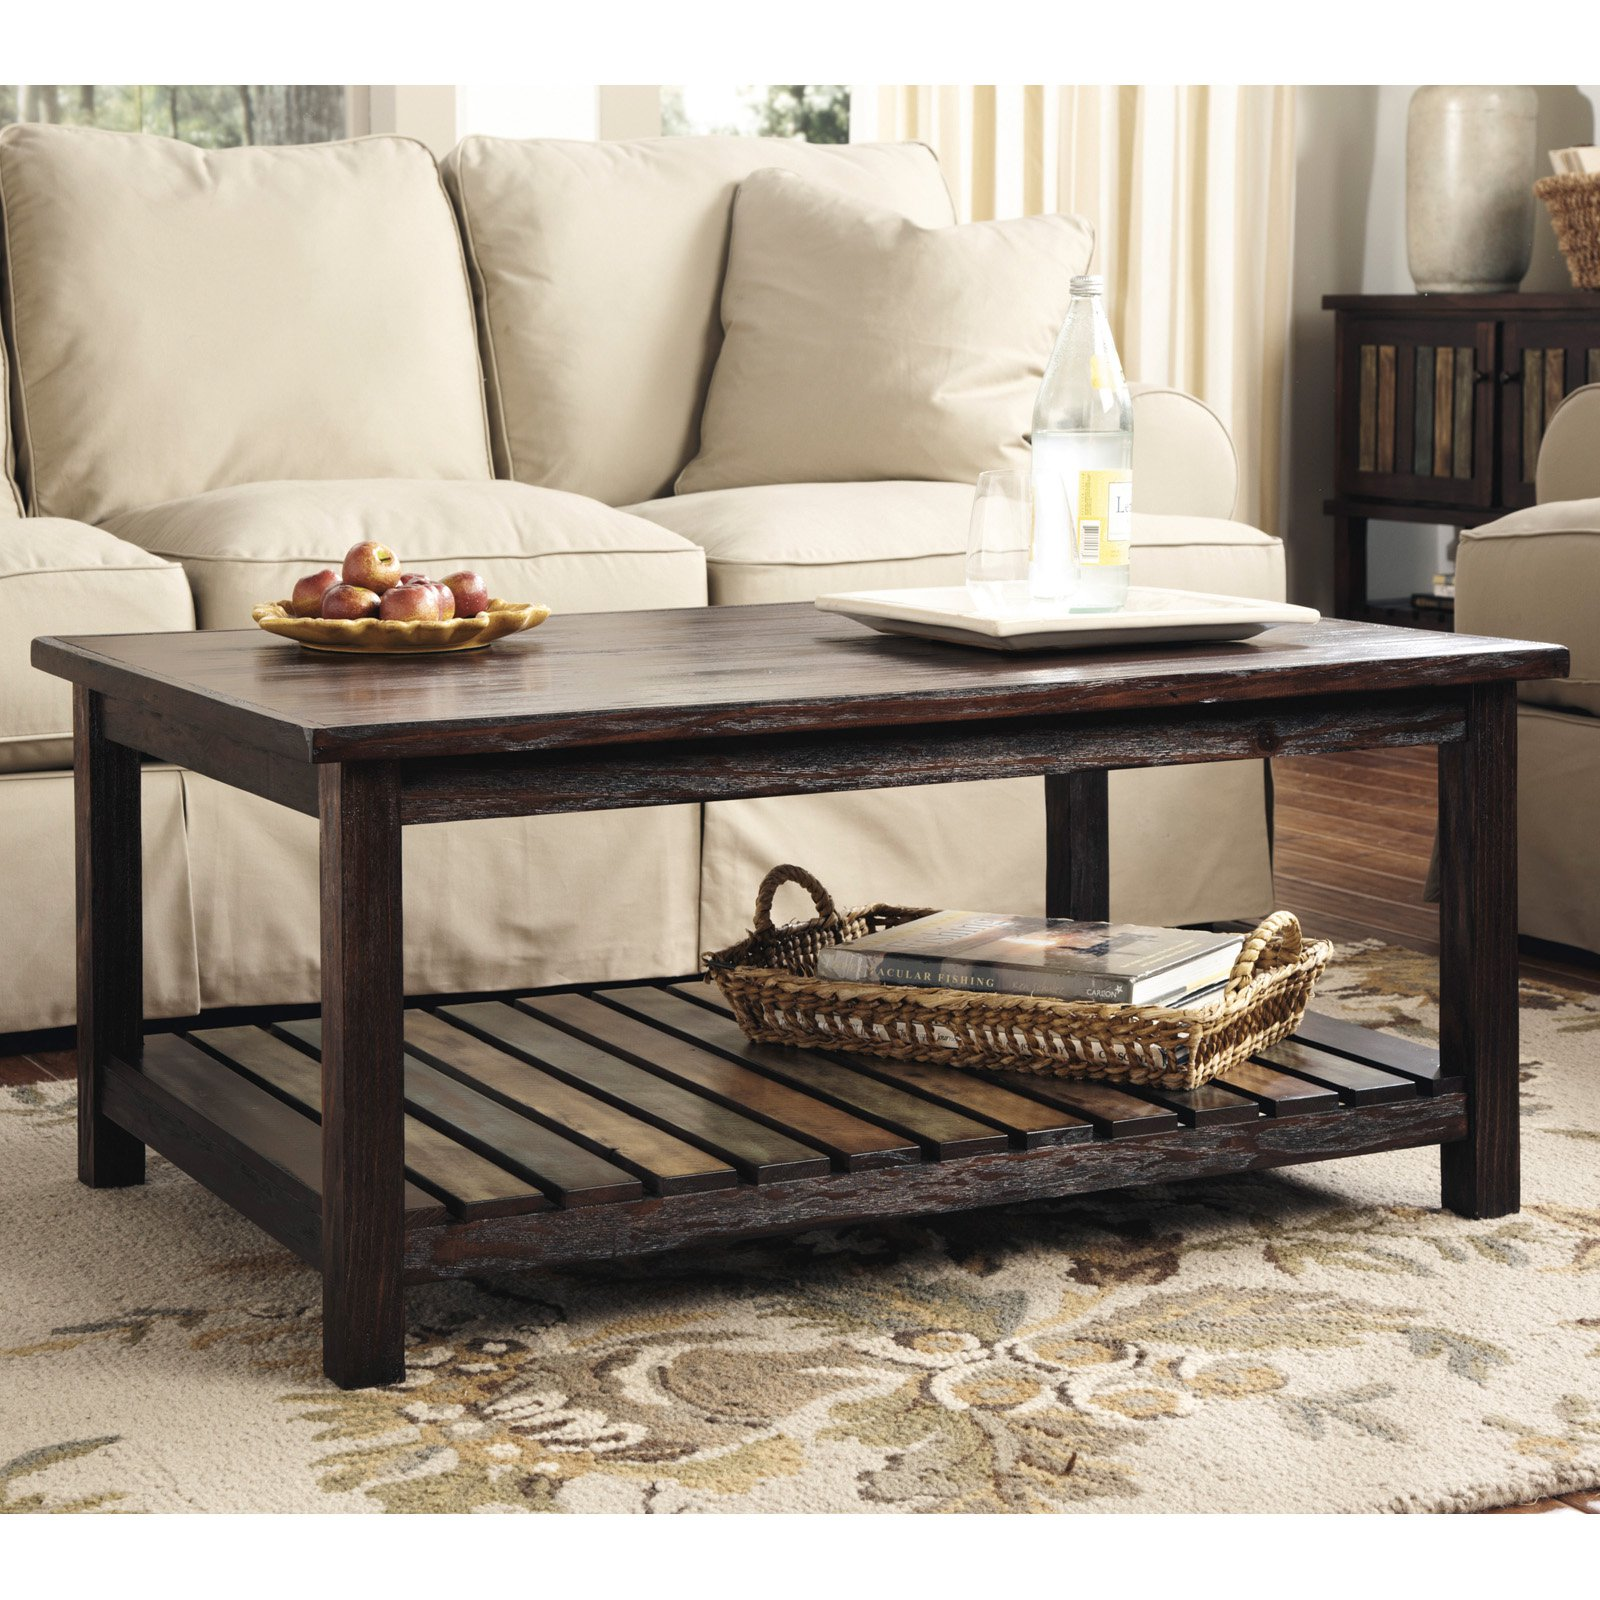 Modesto Coffee Table Rustic Natural Walmart